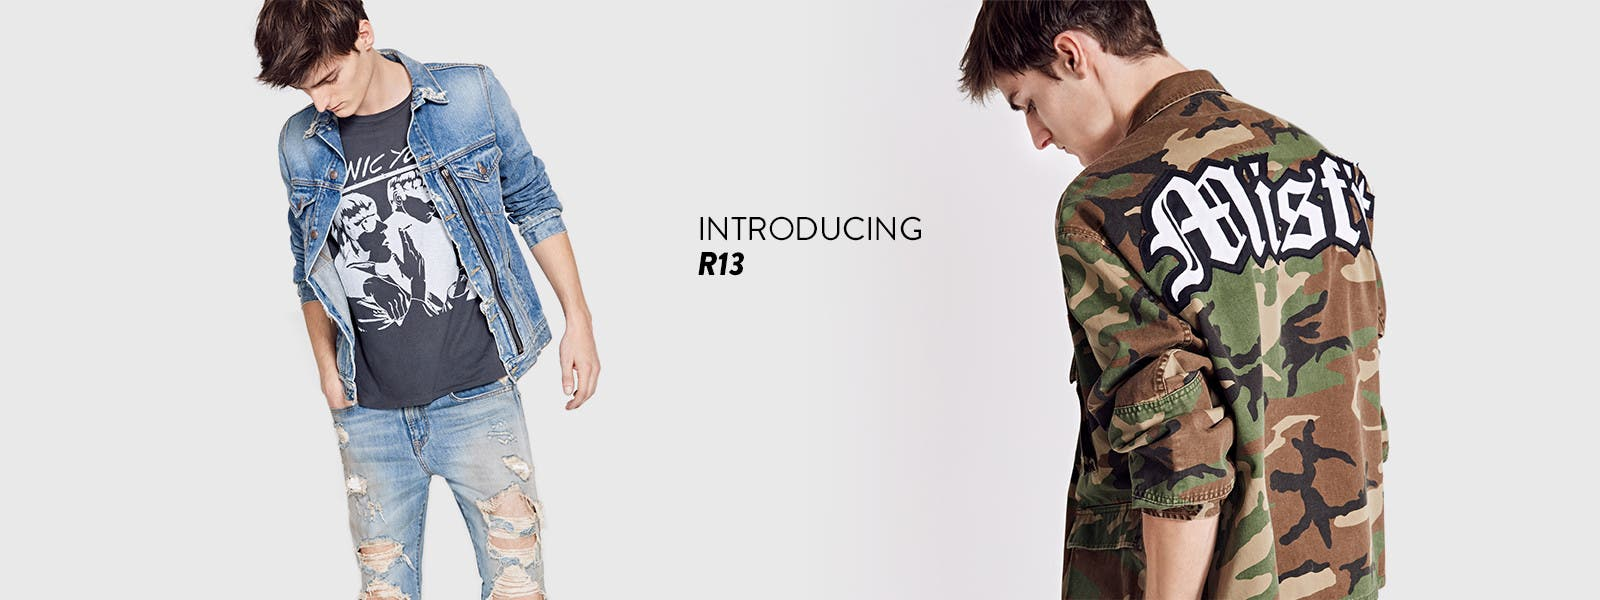 Introducing R13.